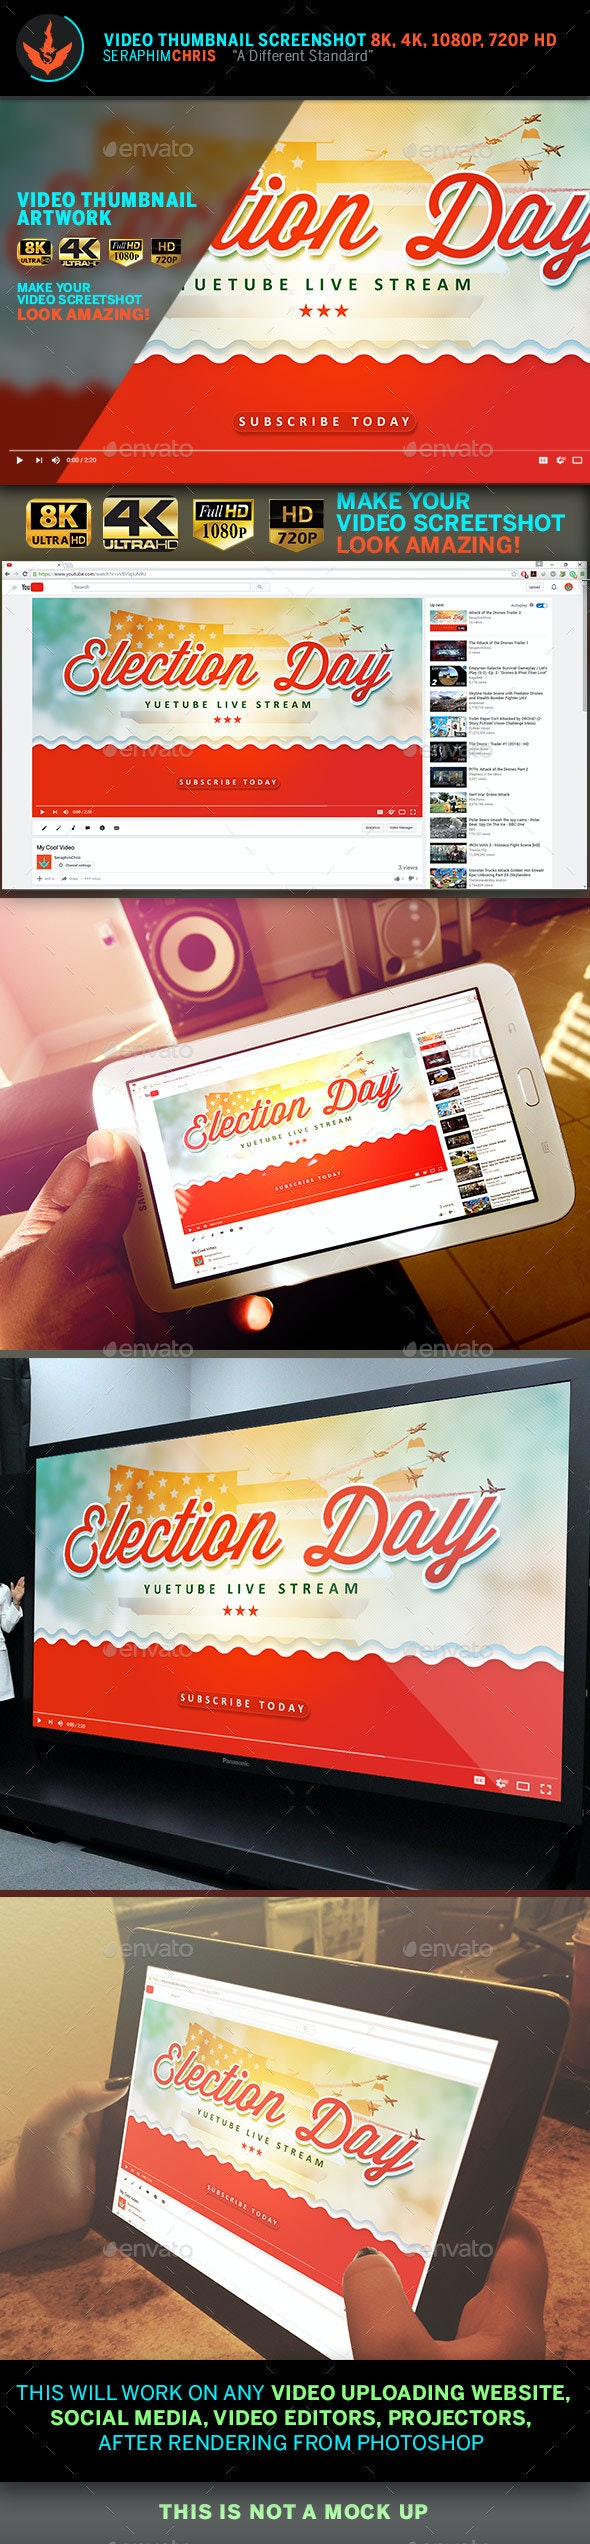 Political YouTube Video Thumbnail Screenshot Template 8 - YouTube Social Media